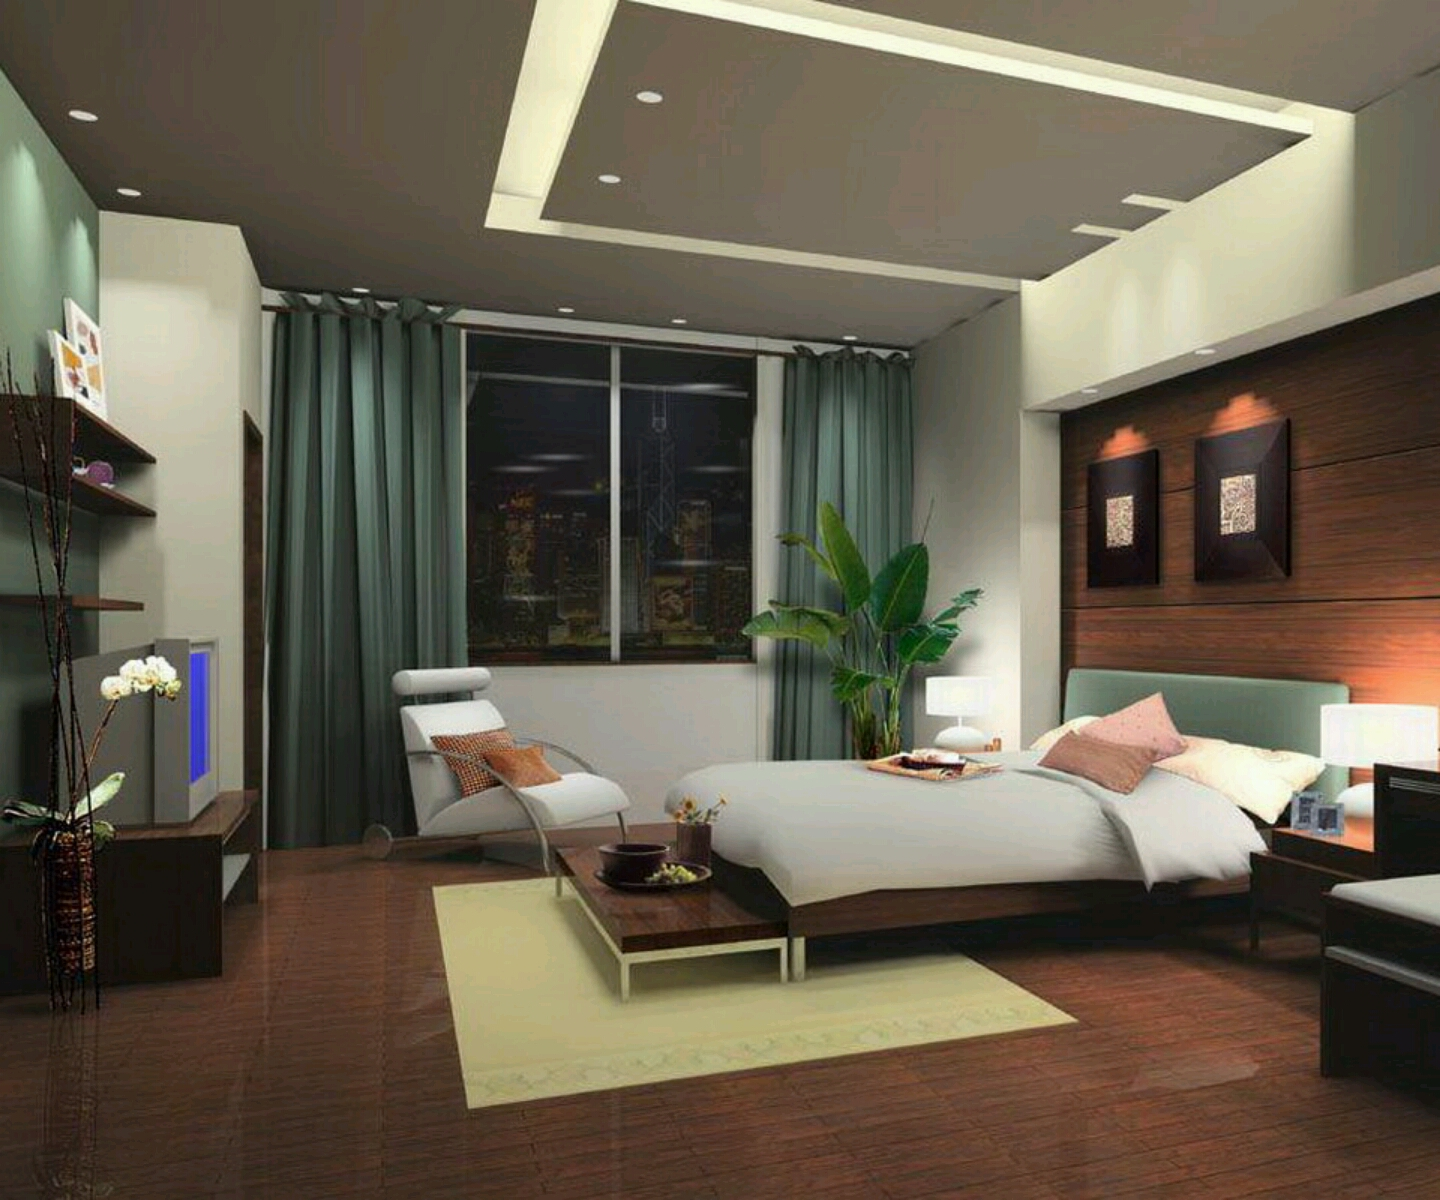 New home designs latest modern bedrooms designs best ideas for Innovative bedroom designs